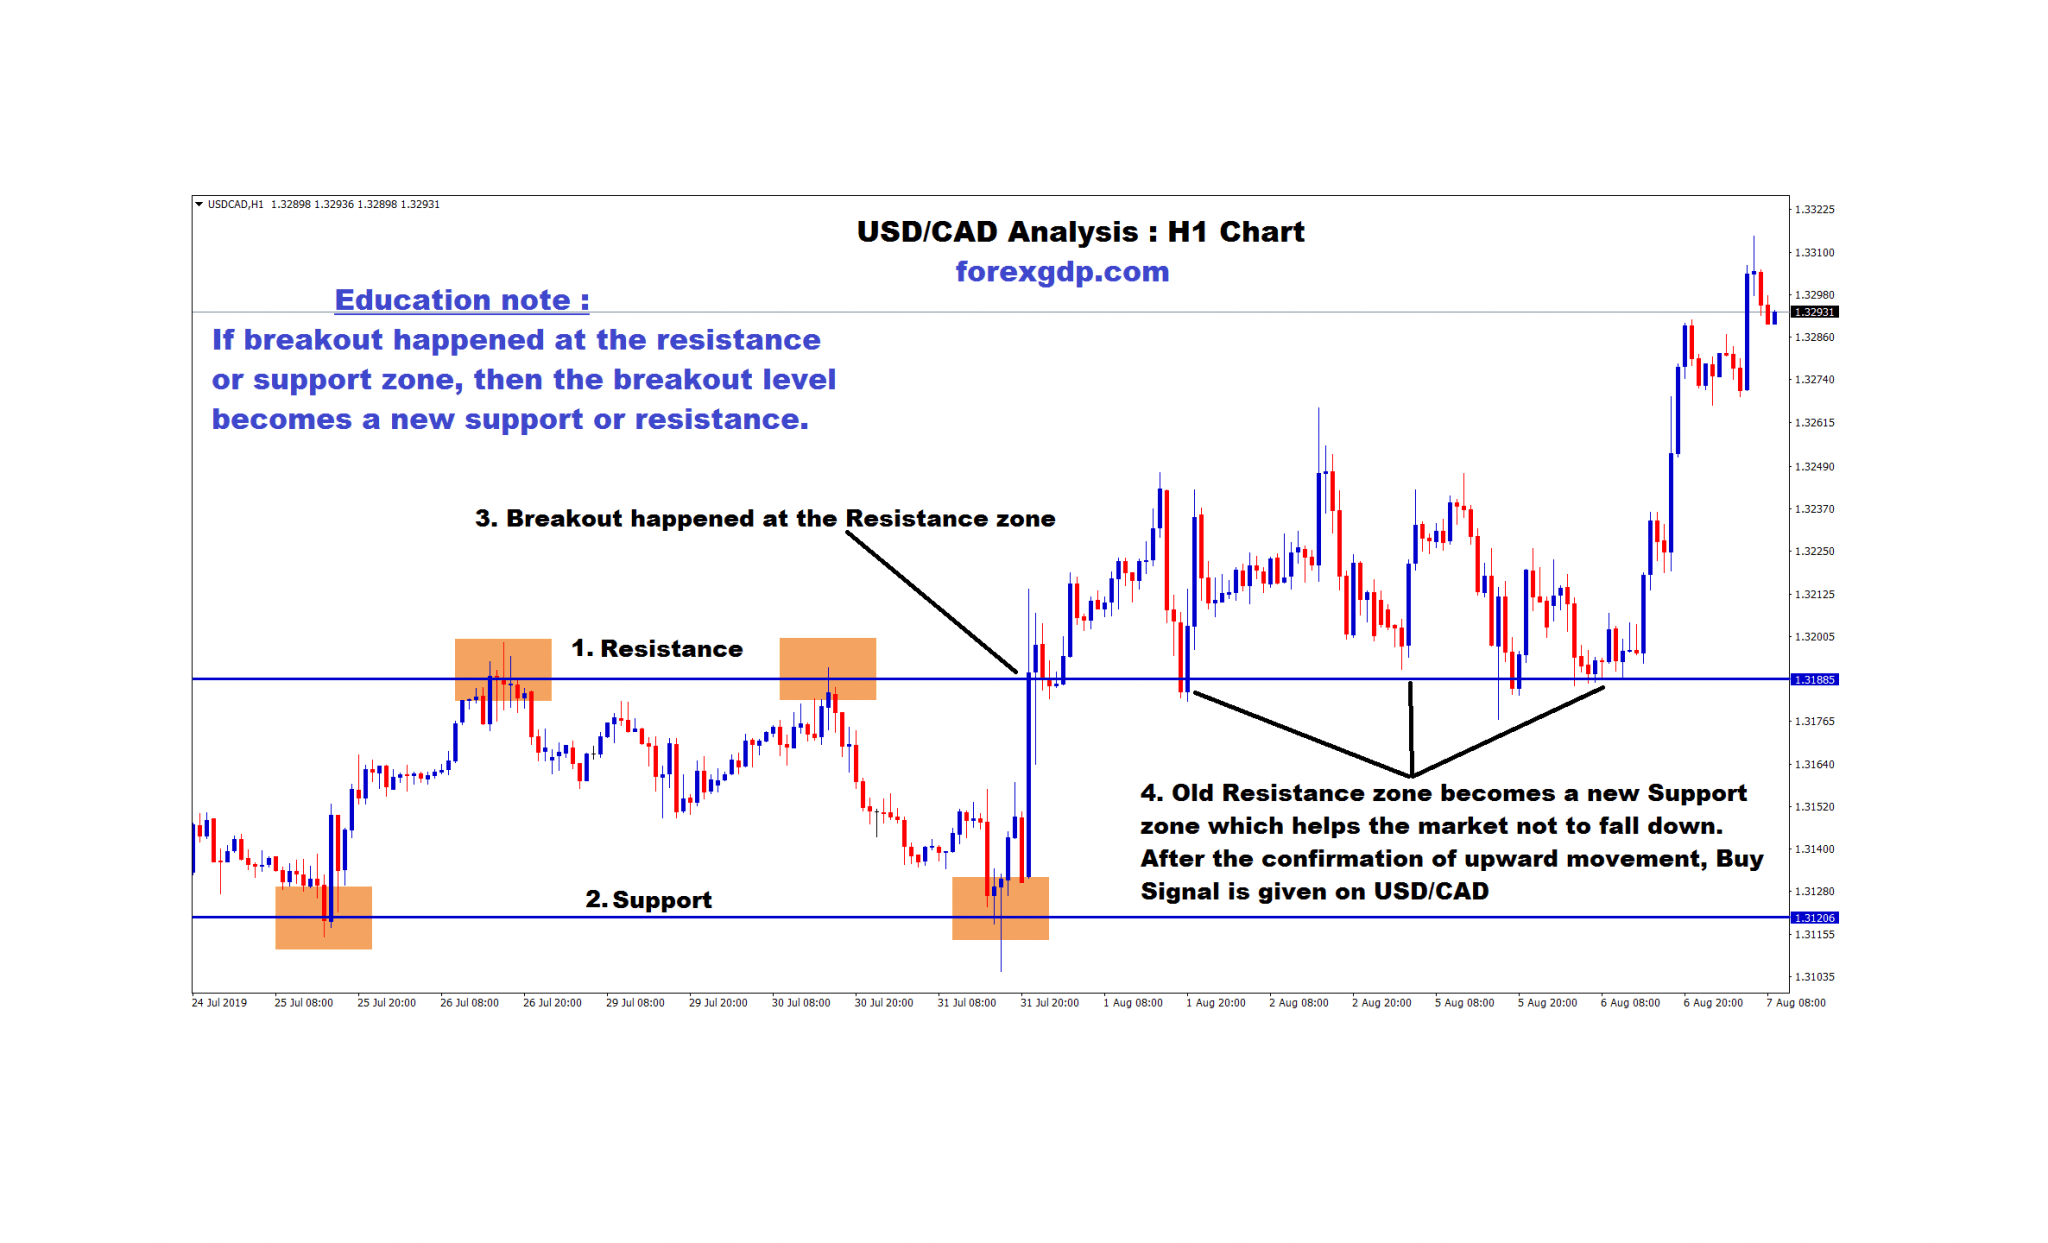 USD/CAD new support zone has formed it helps the market not to fall down